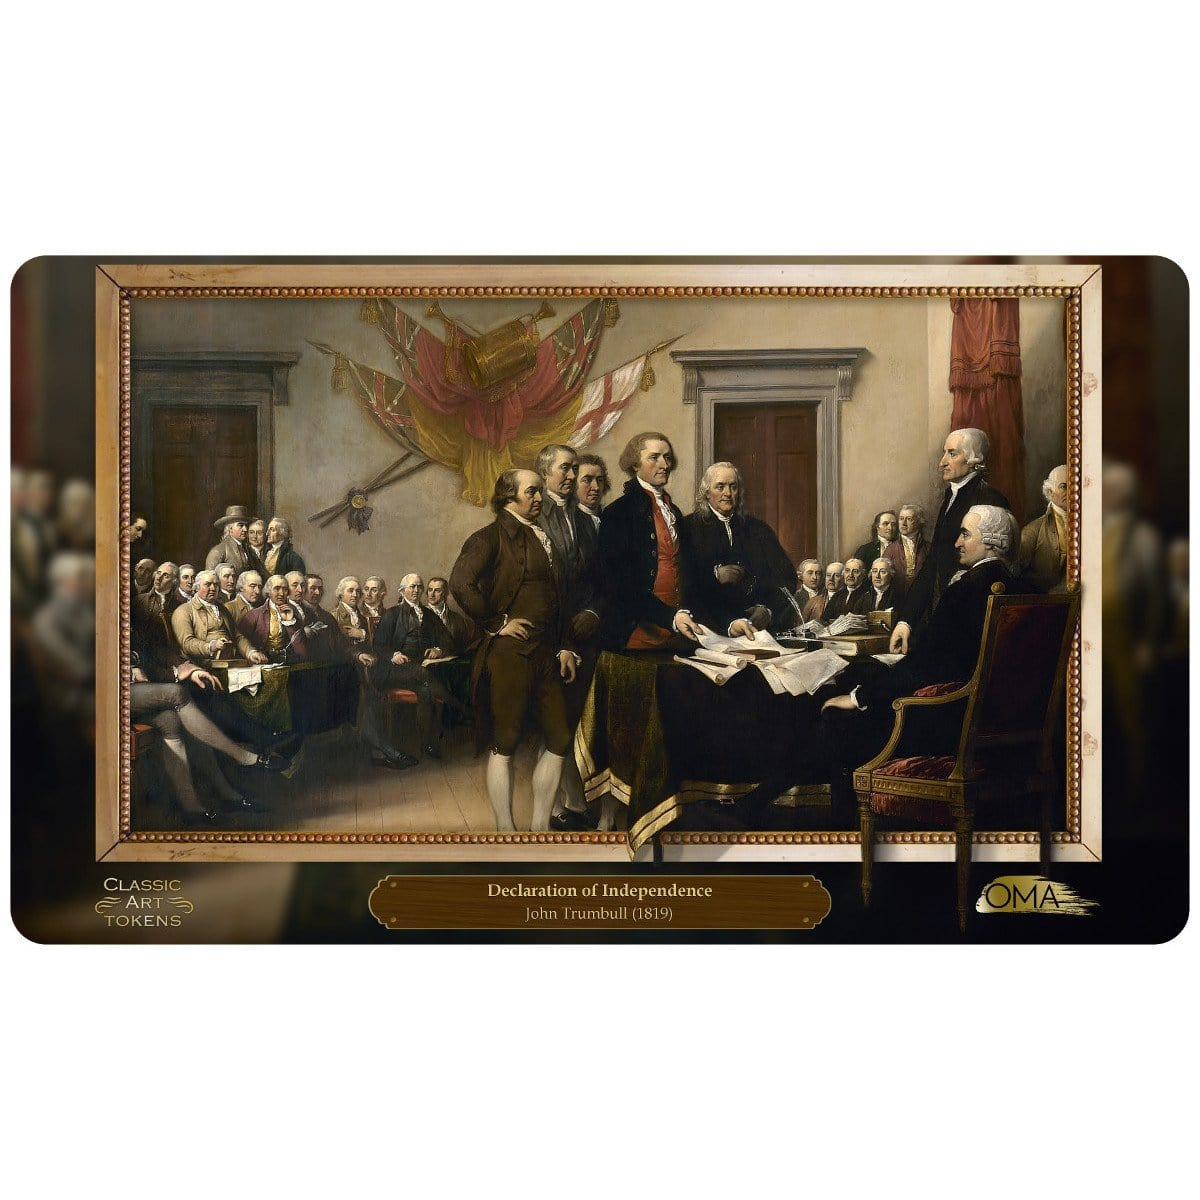 Freedom Playmat by John Trumbull - Playmat - Original Magic Art - Accessories for Magic the Gathering and other card games